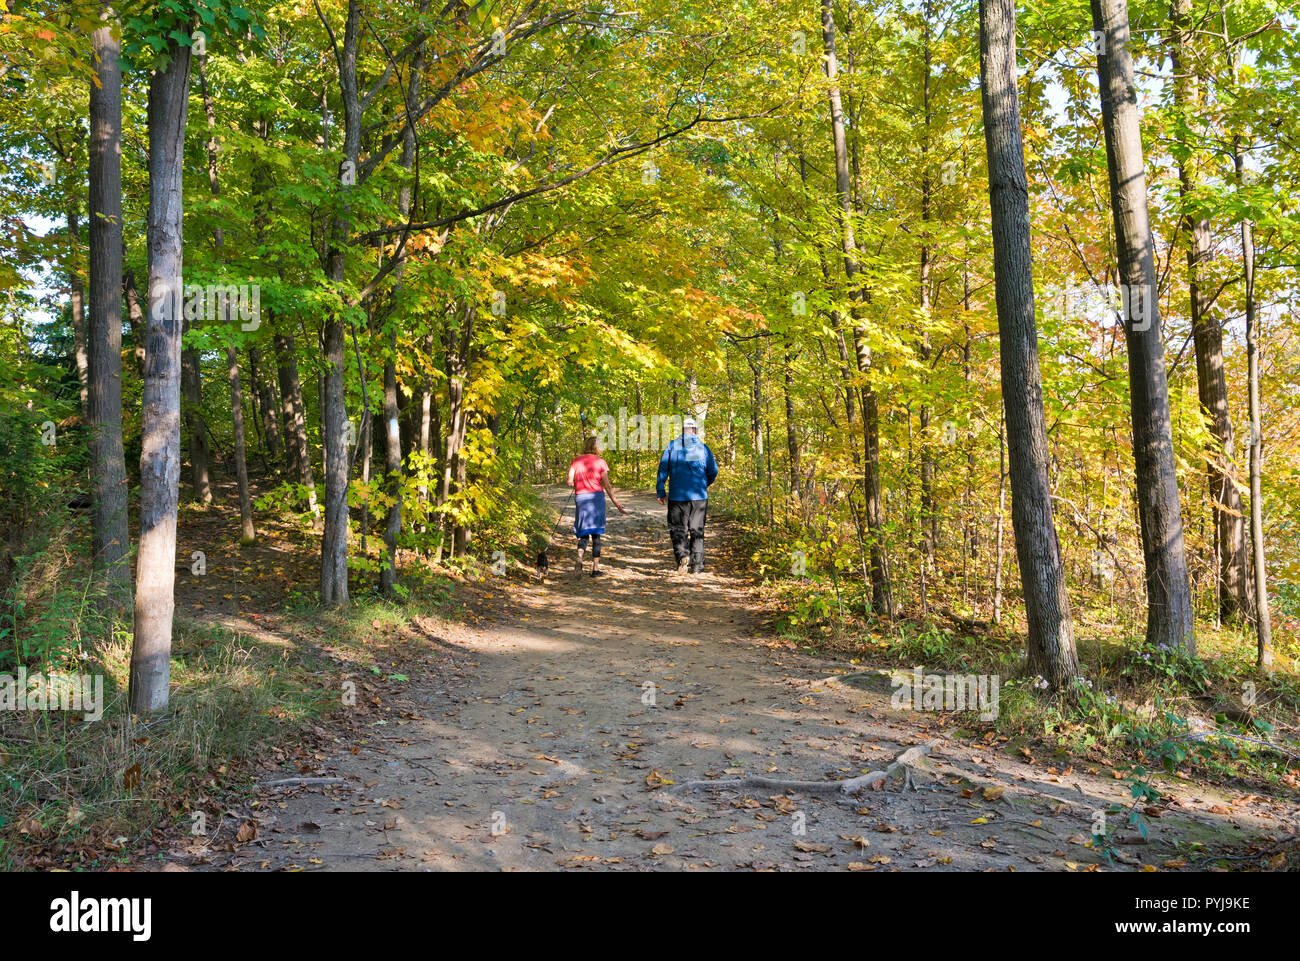 couple-walking-through-forest-path-on-th